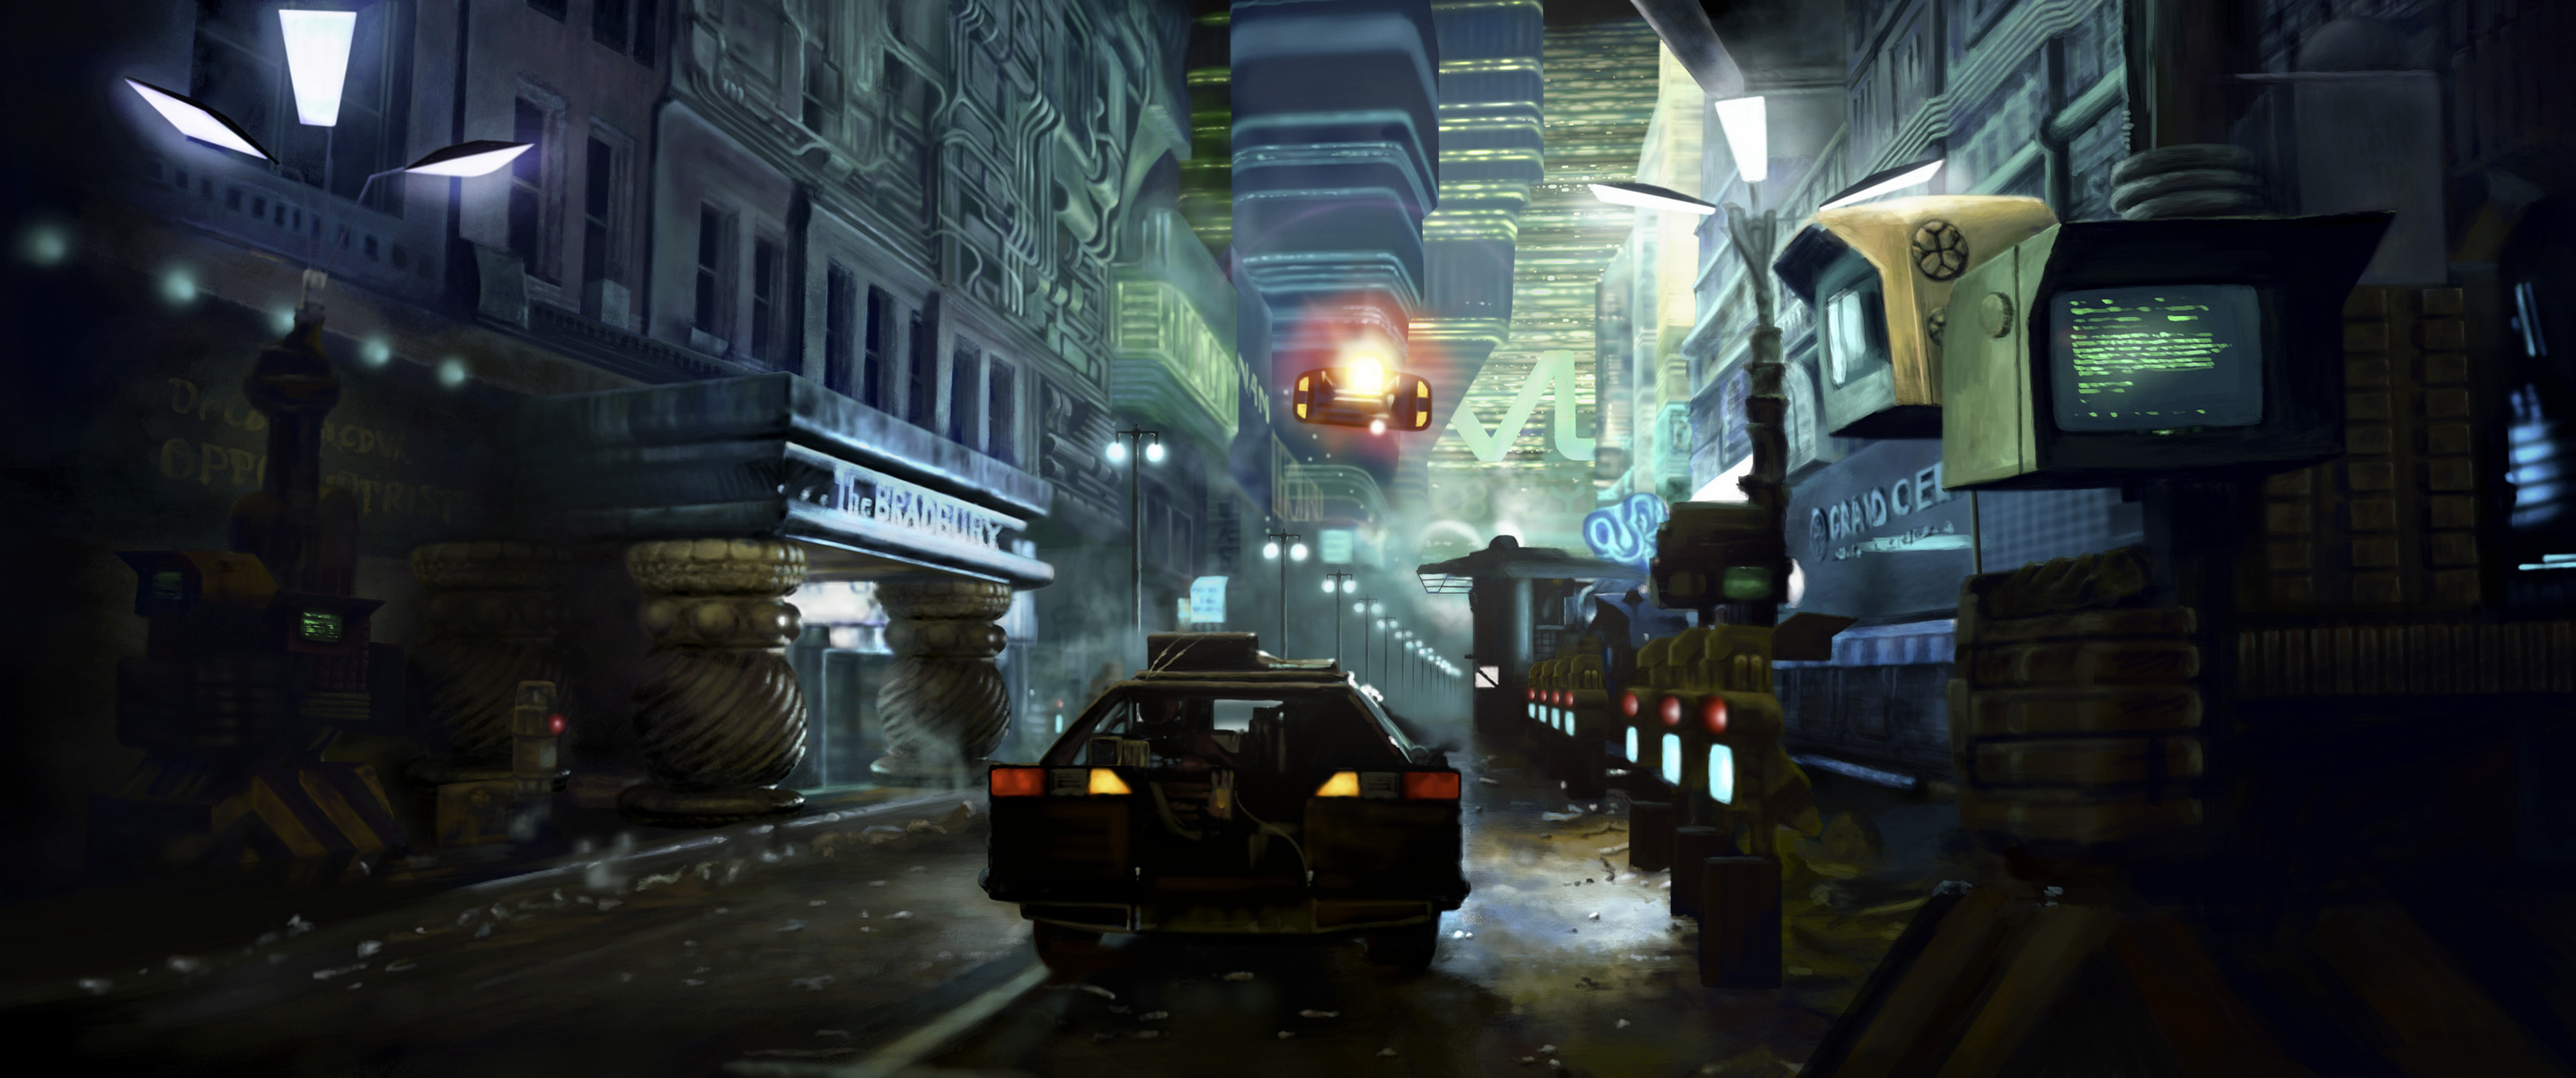 Blade Runner Street Scene – Digital Painting – Captain 3D presents…